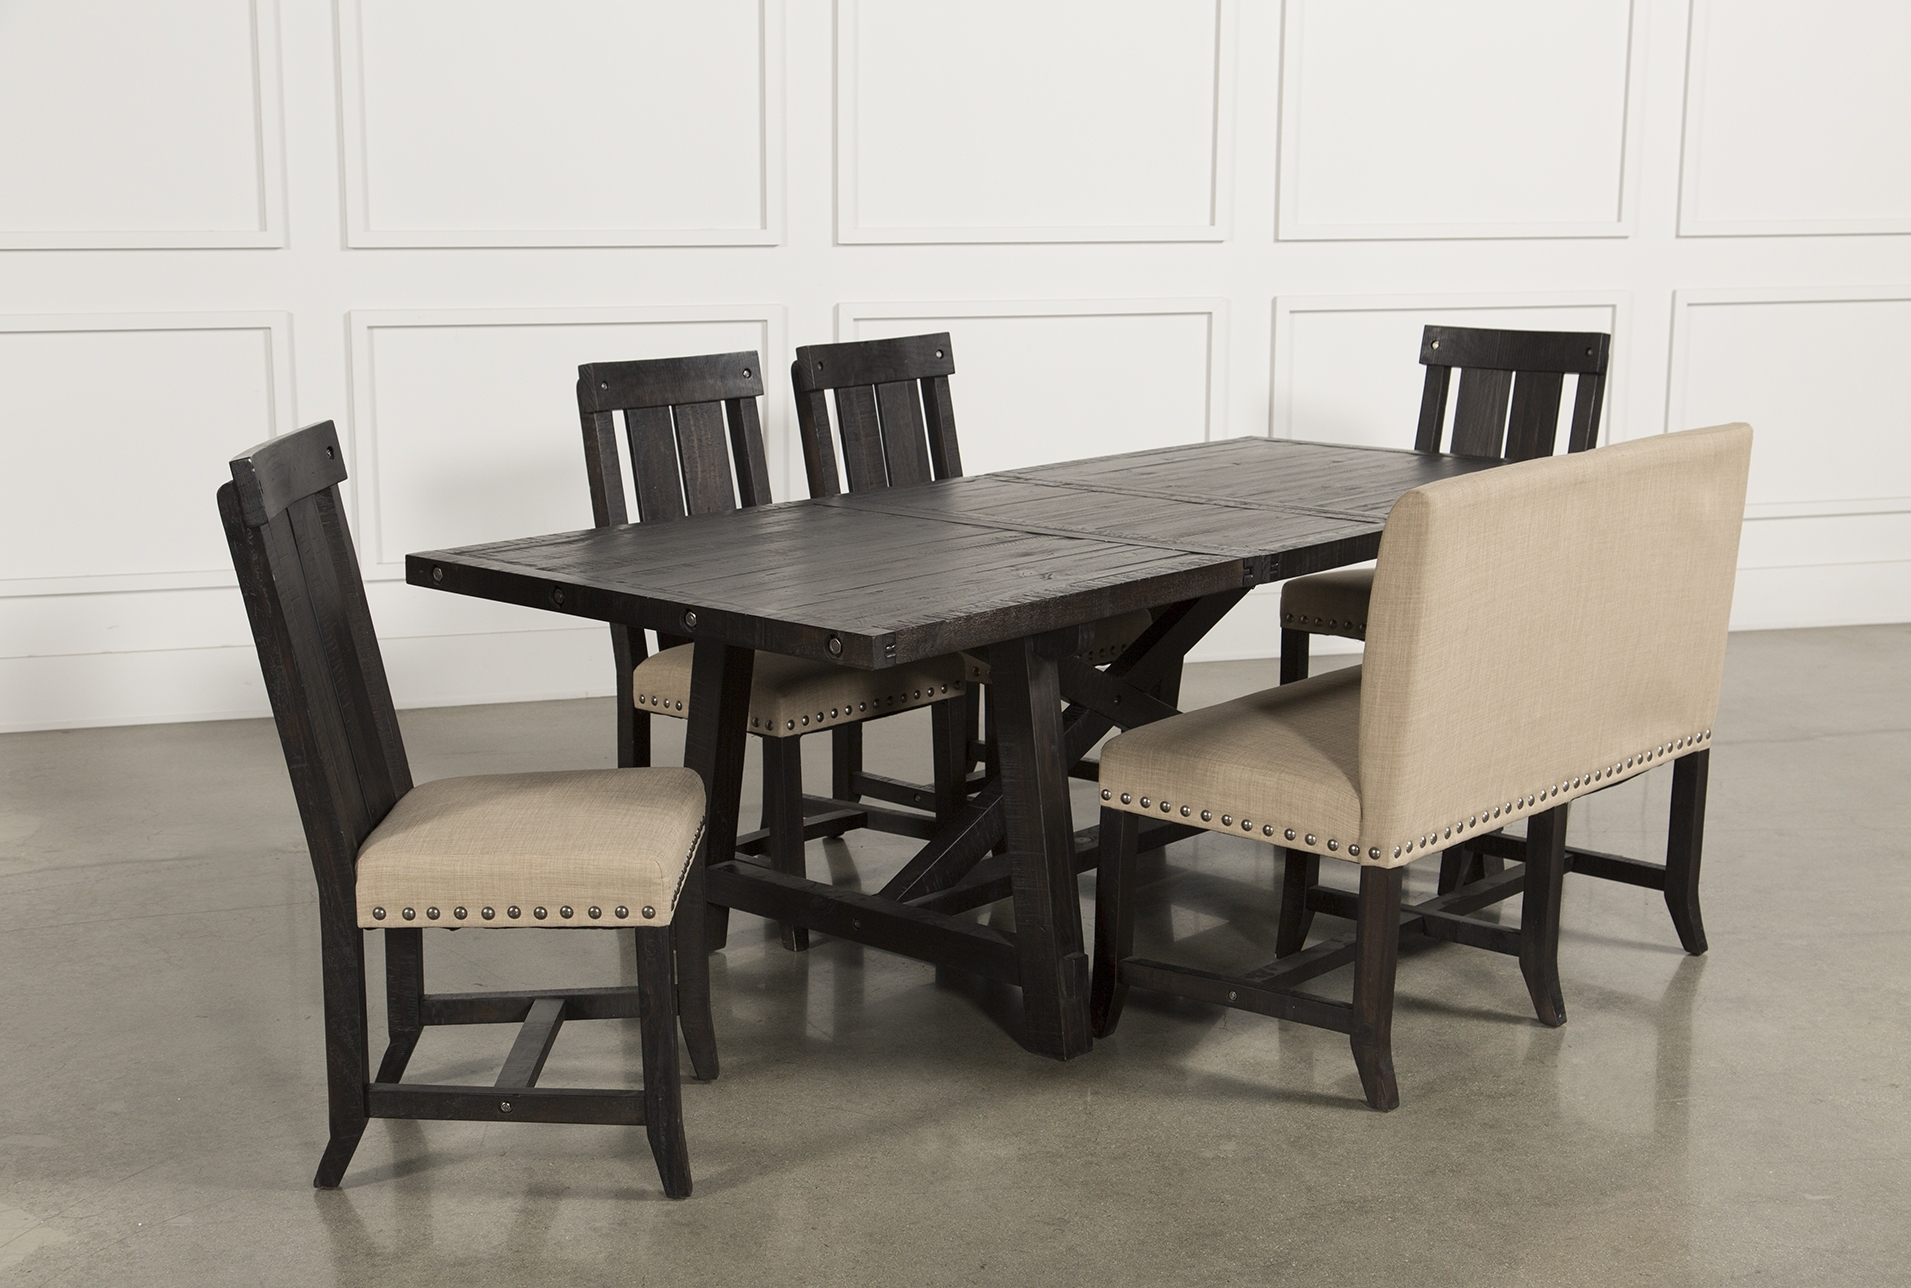 Jaxon 6 Piece Rectangle Dining Set W/bench & Wood Chairs | Products Inside Most Current Partridge 6 Piece Dining Sets (Image 6 of 20)